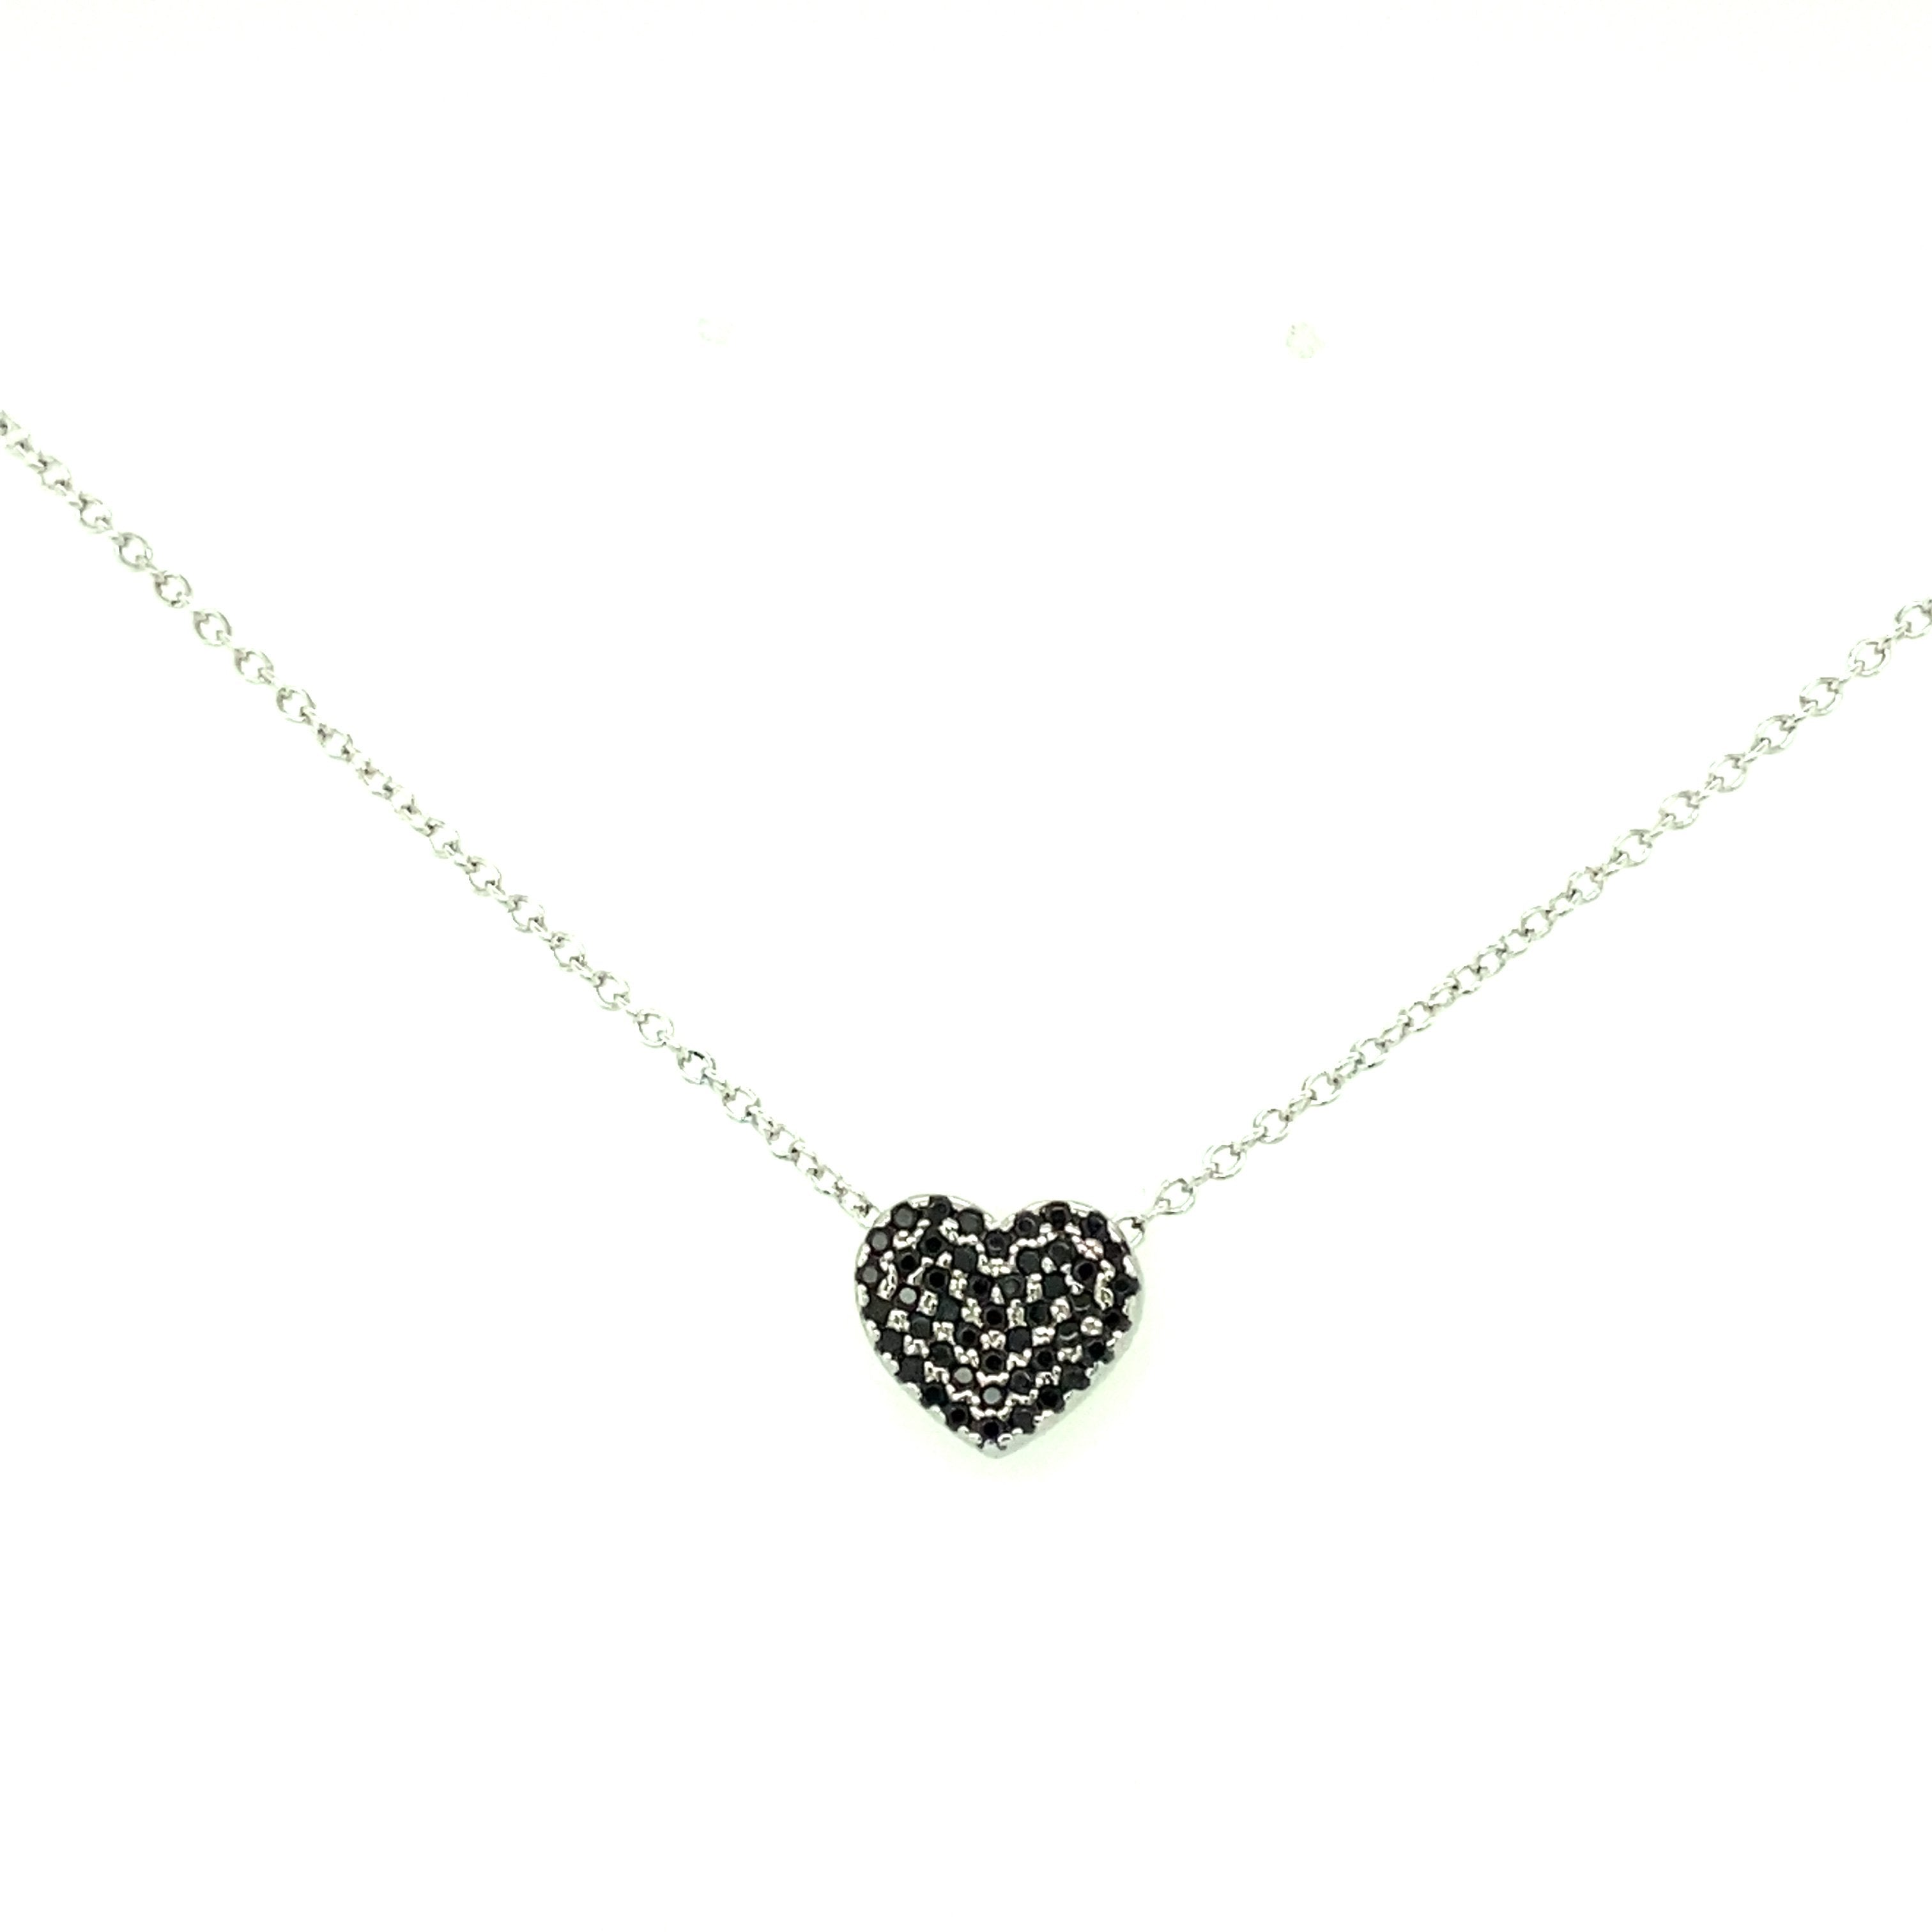 Necklace n1126-p - 925 Sterling Silver